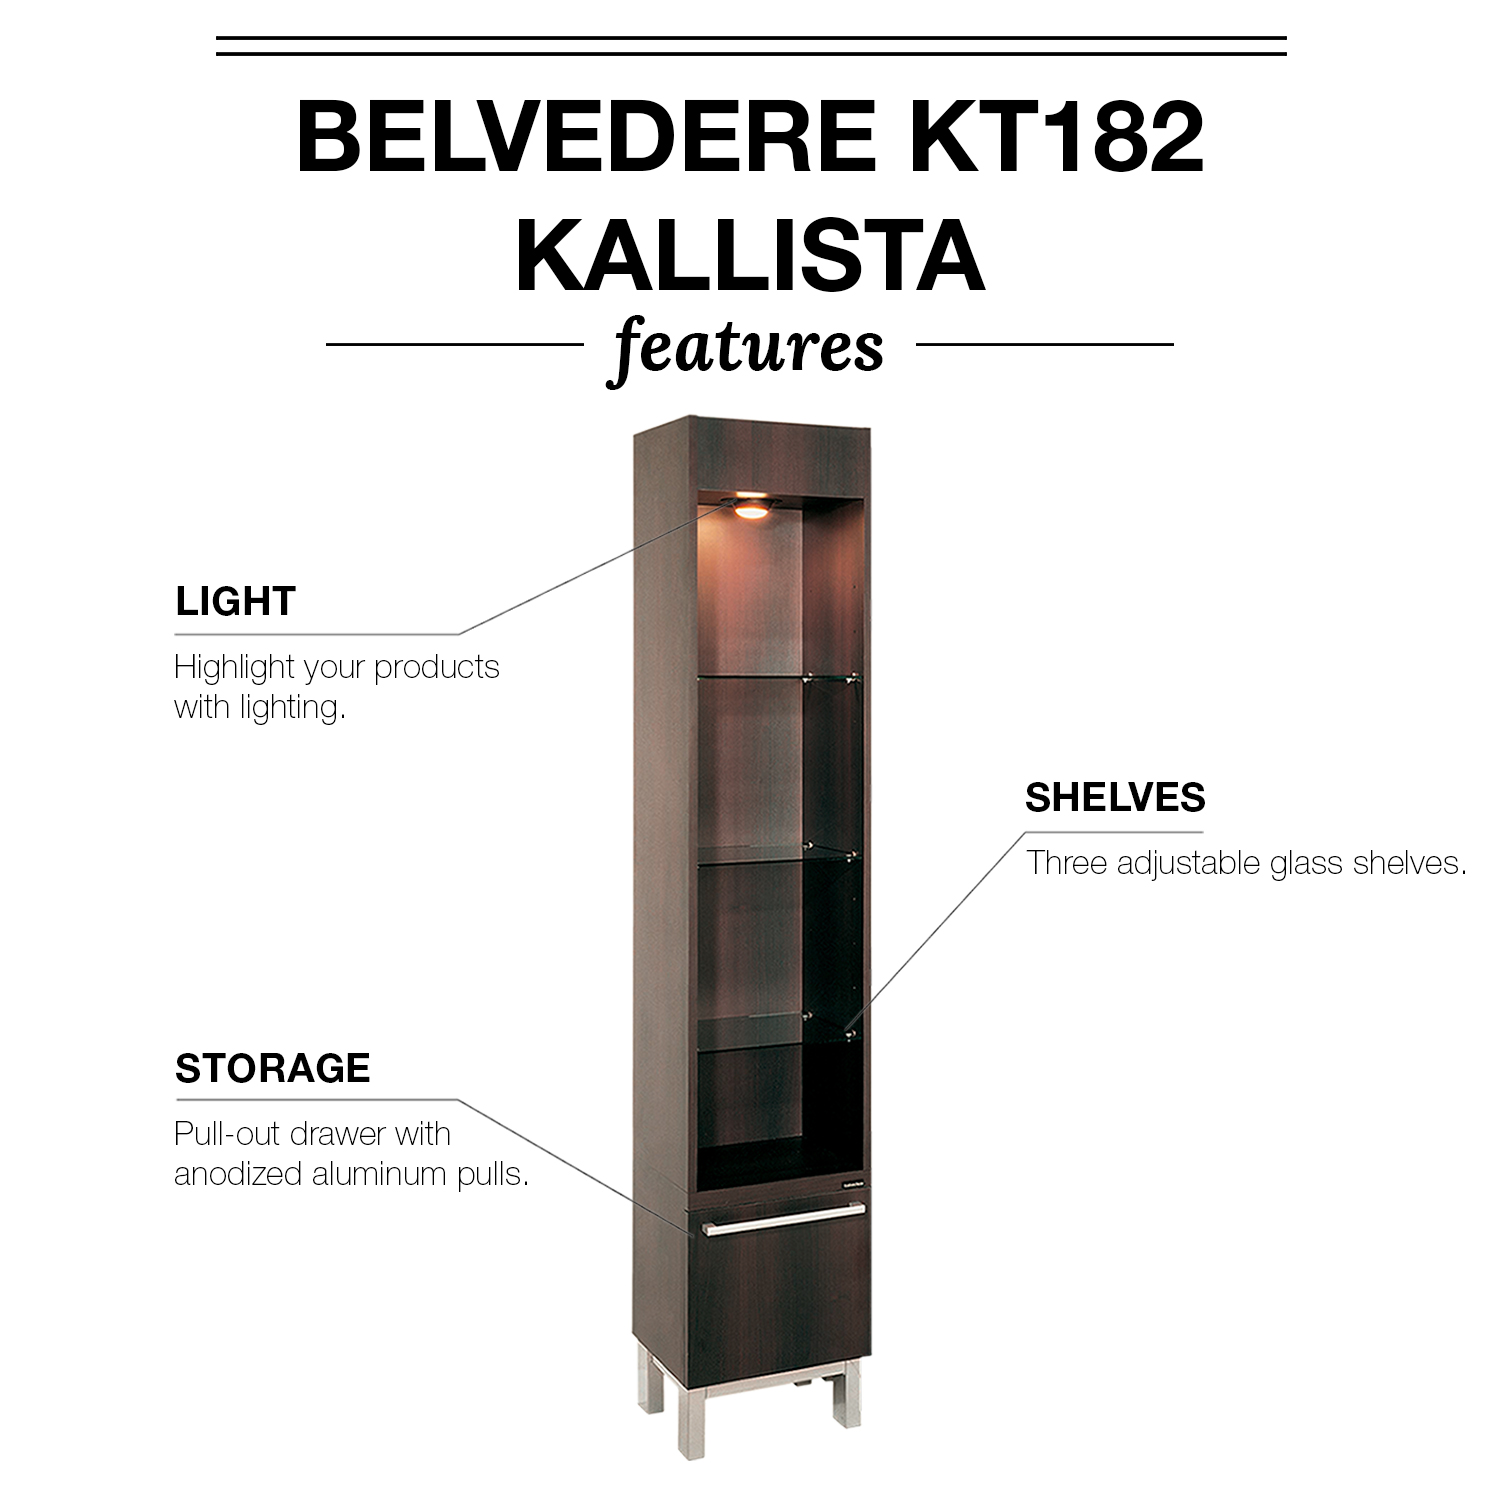 Belvedere KT182/KT183 Kallista Retail Display Cases alternative product image 4